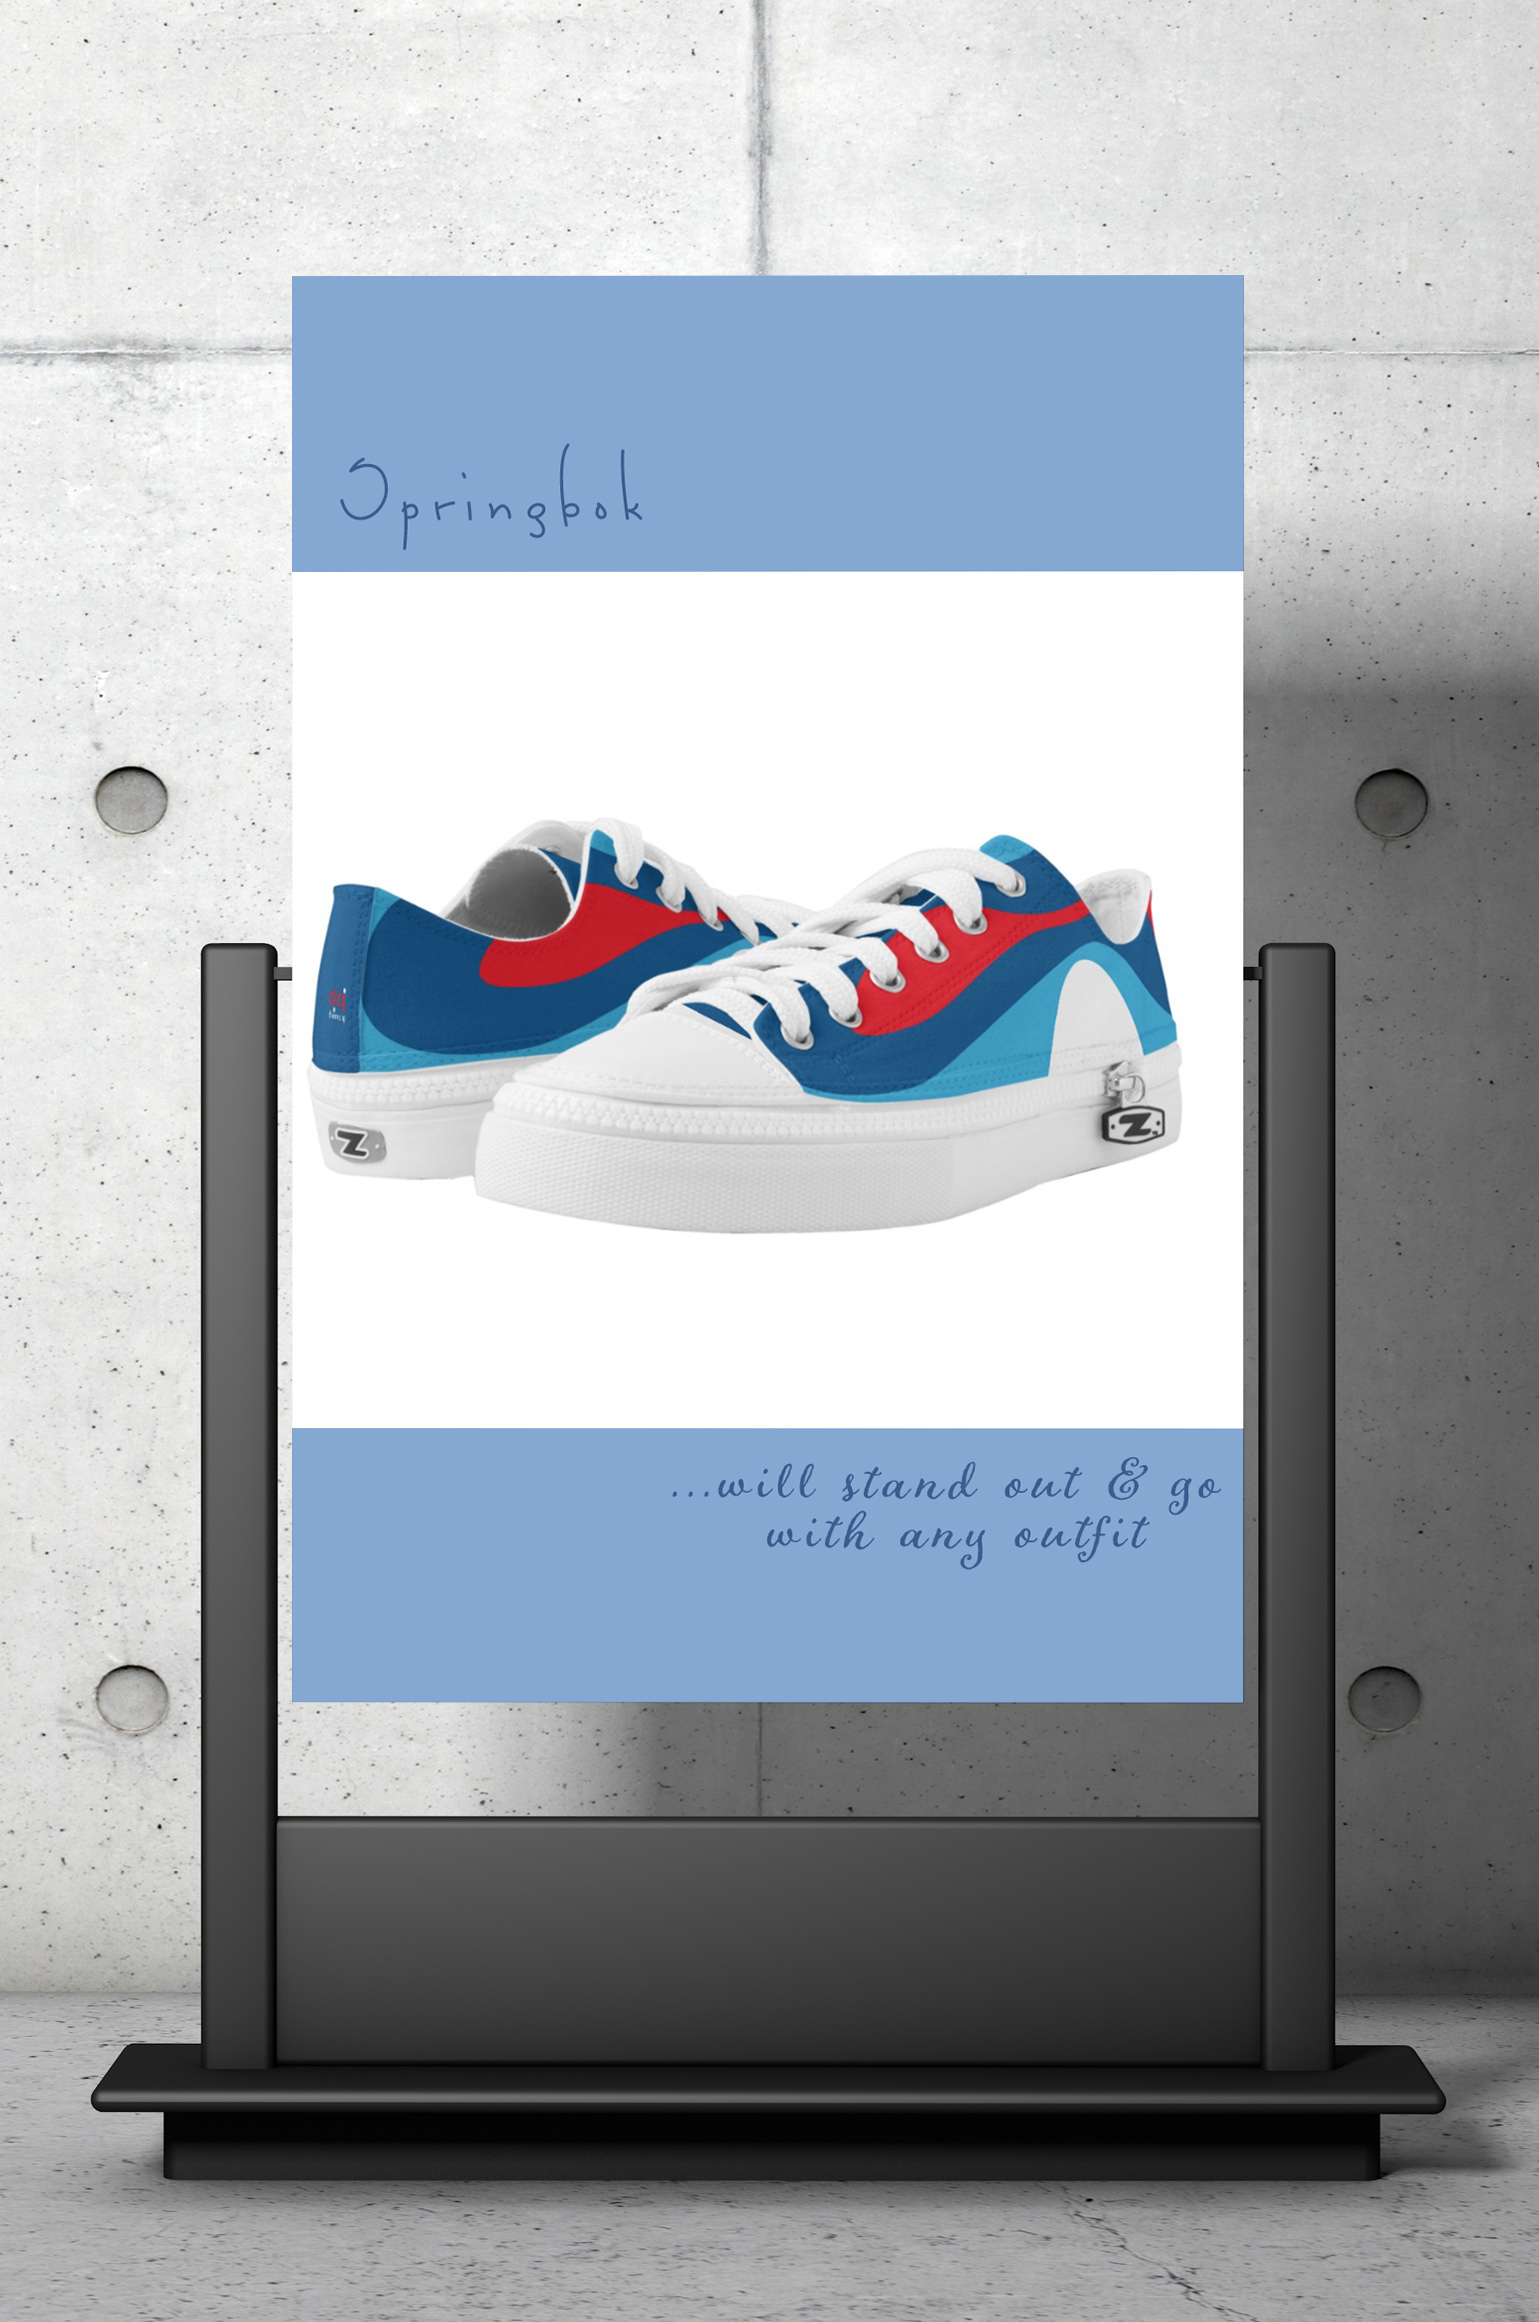 omfortable stylish fashion sneakers